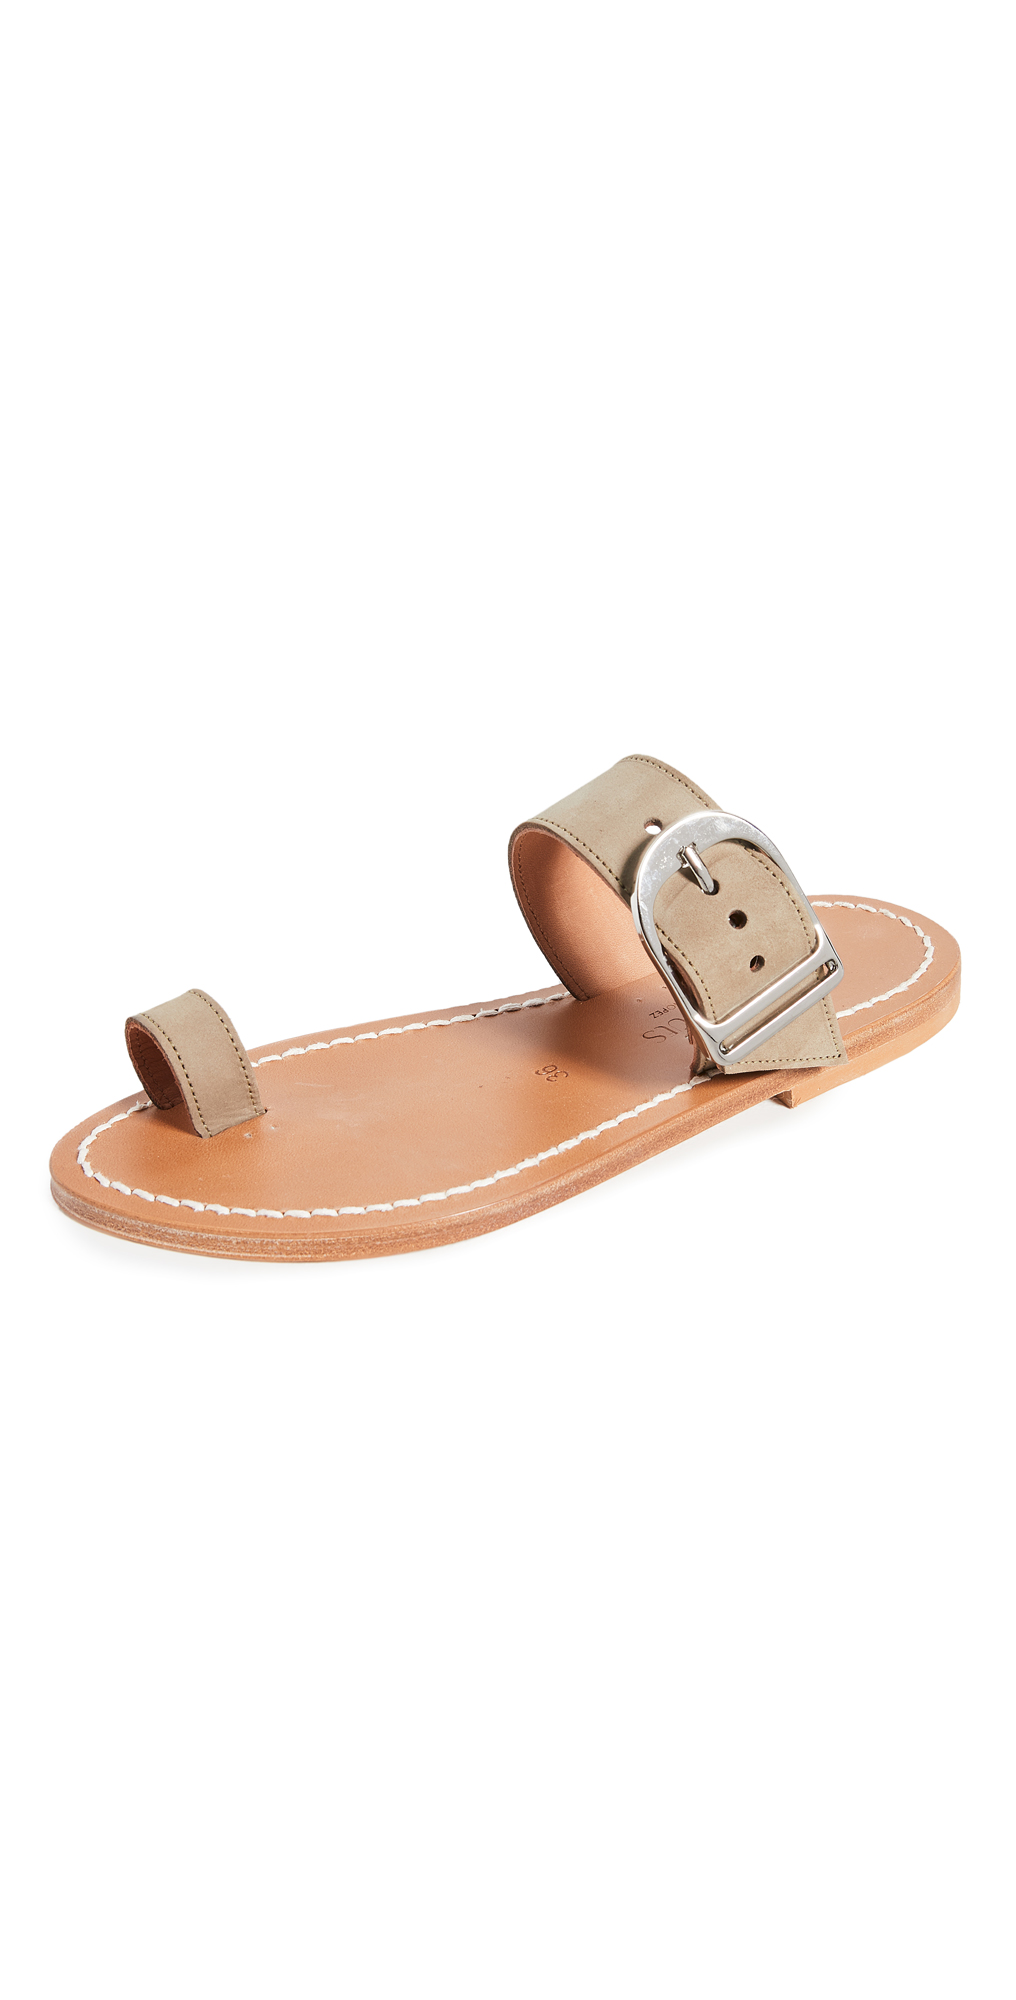 K. Jacques Gallios Toe Ring Sandals